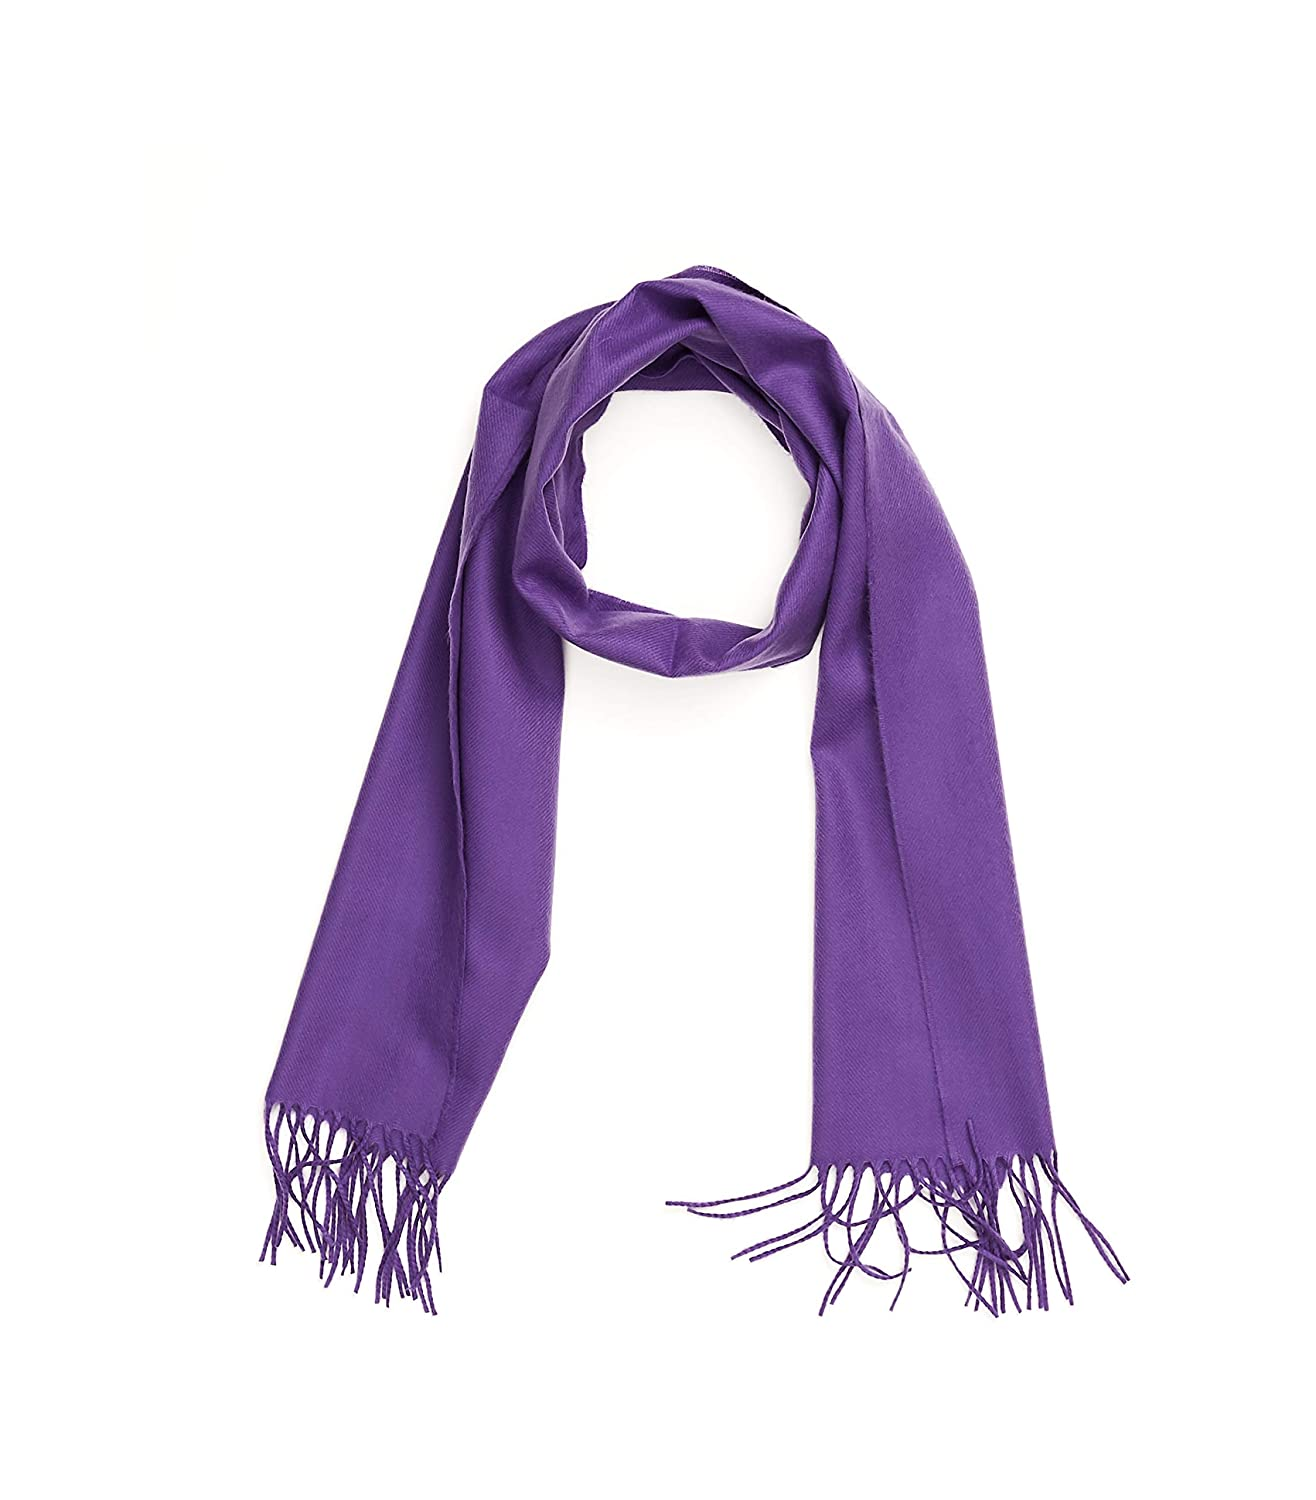 Purple INVERNO Super Soft Luxurious Cashmere Feel Warm Winter Solid Plain color Unisex Scarf